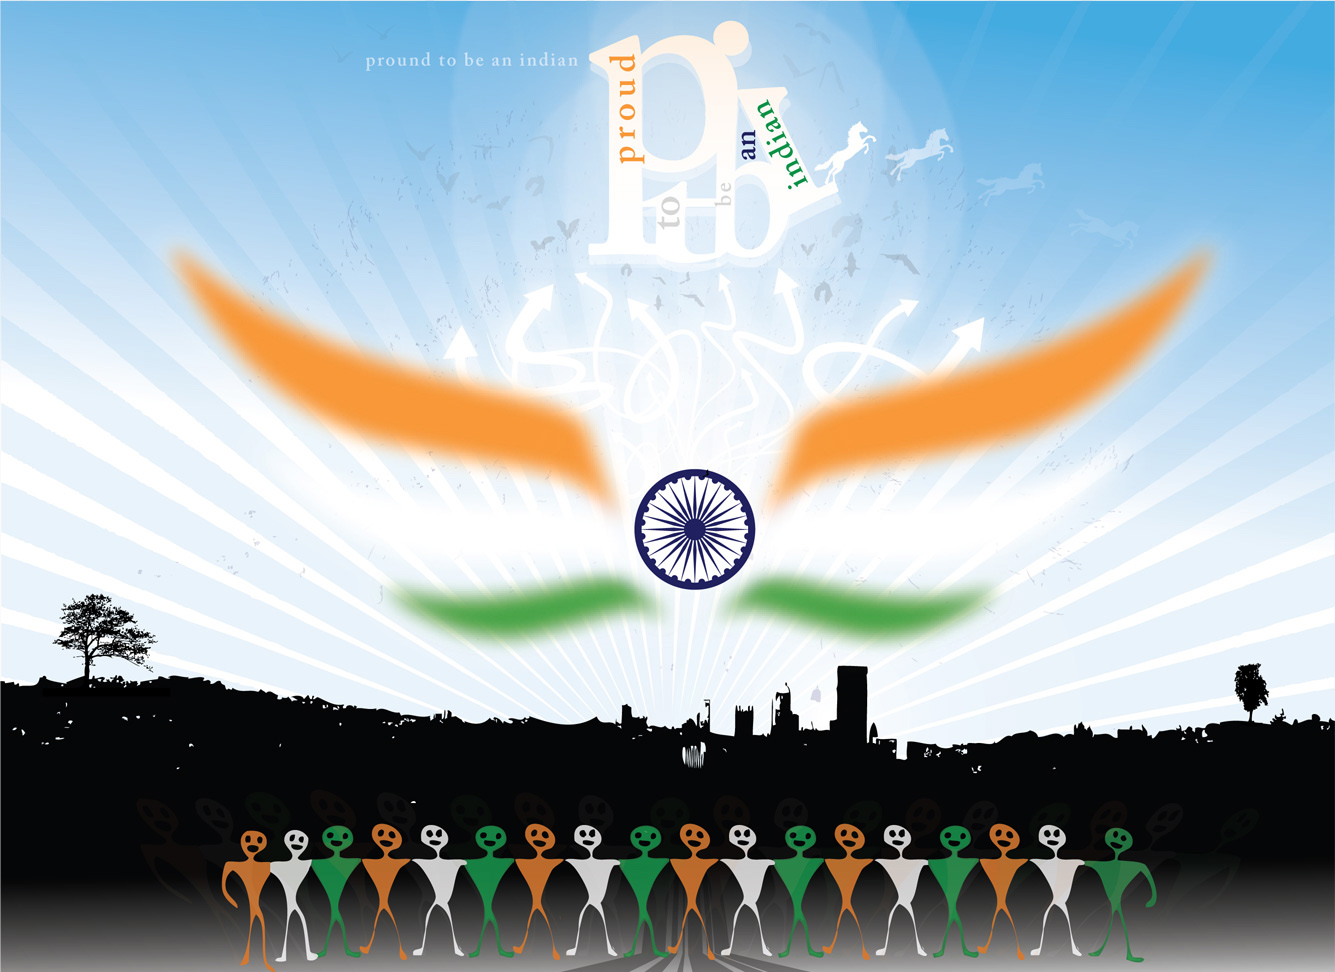 Indian Hd Backgrounds: Incredible India Wallpapers